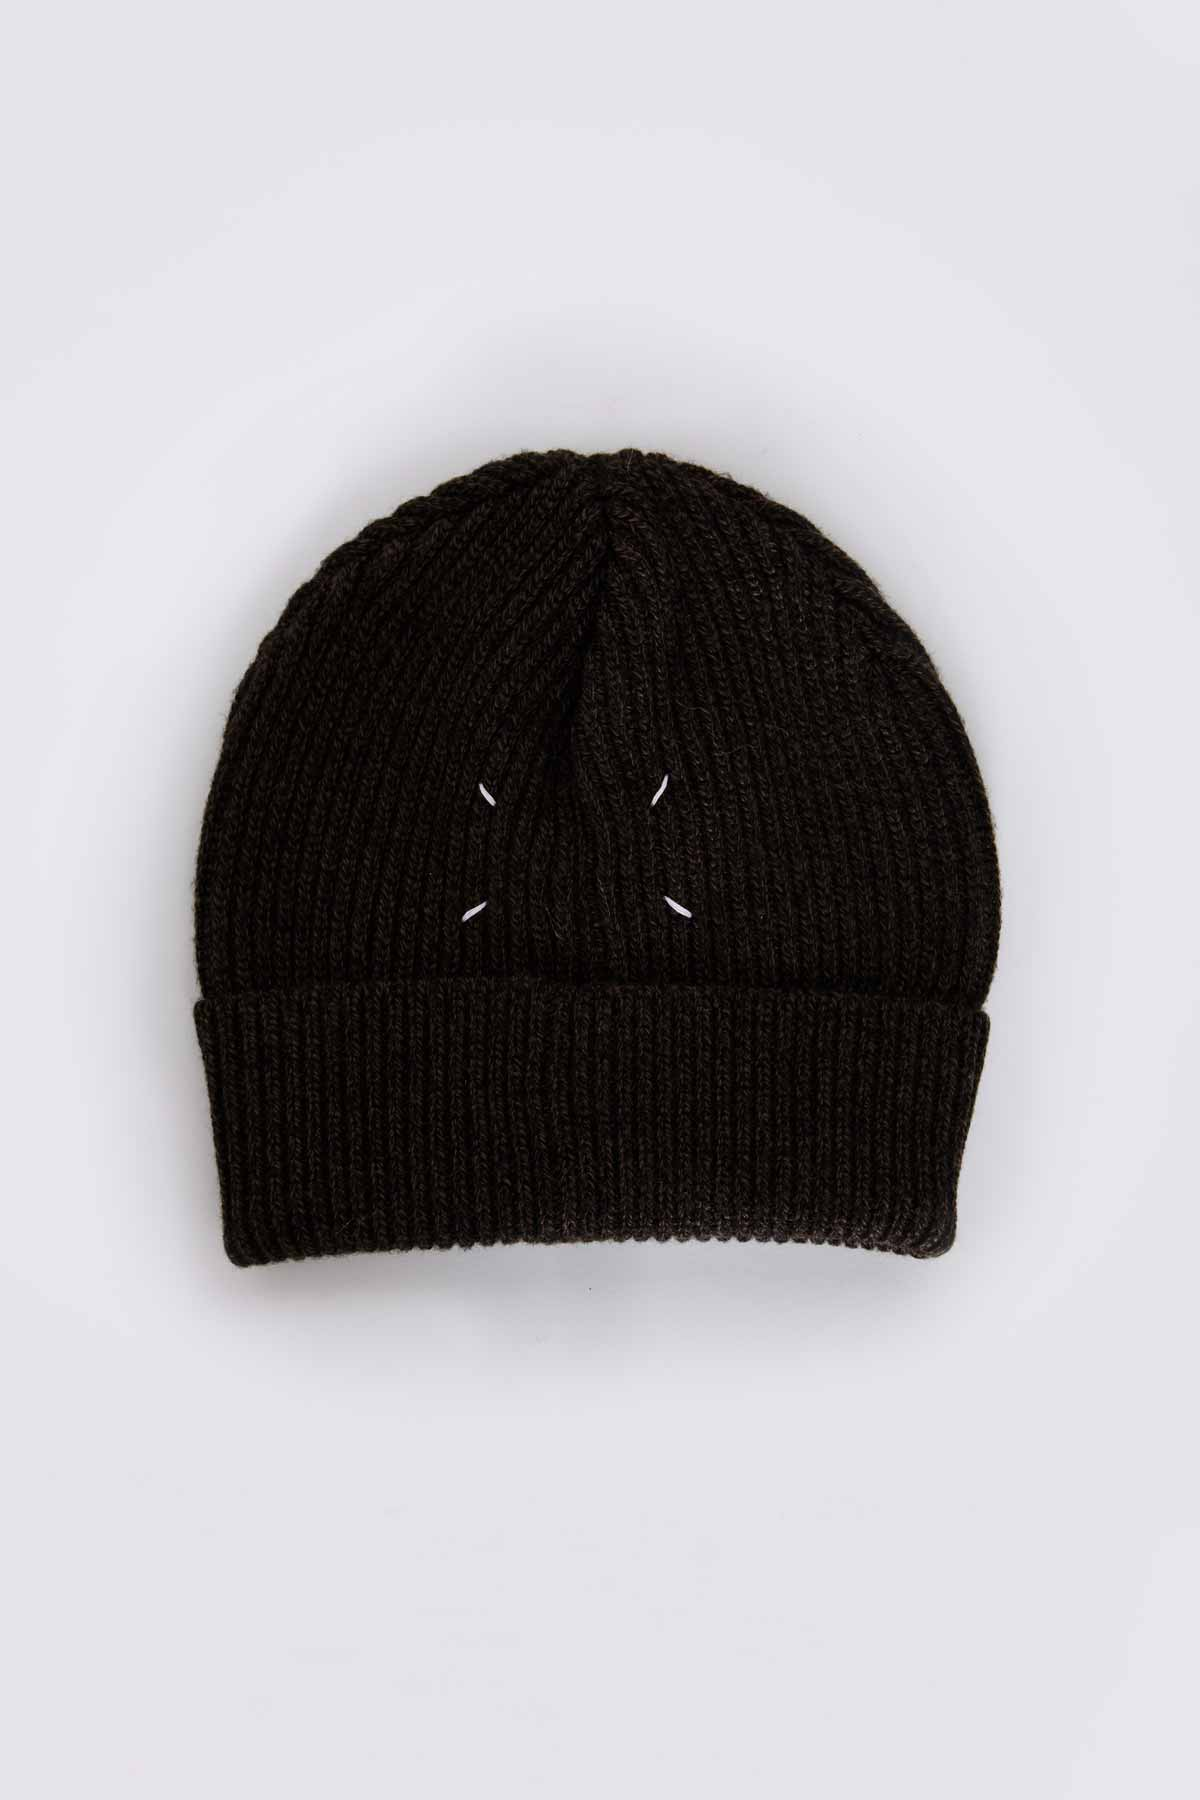 MAISON MARTIN MARGIELA 22 Wool Rib Hat Brown